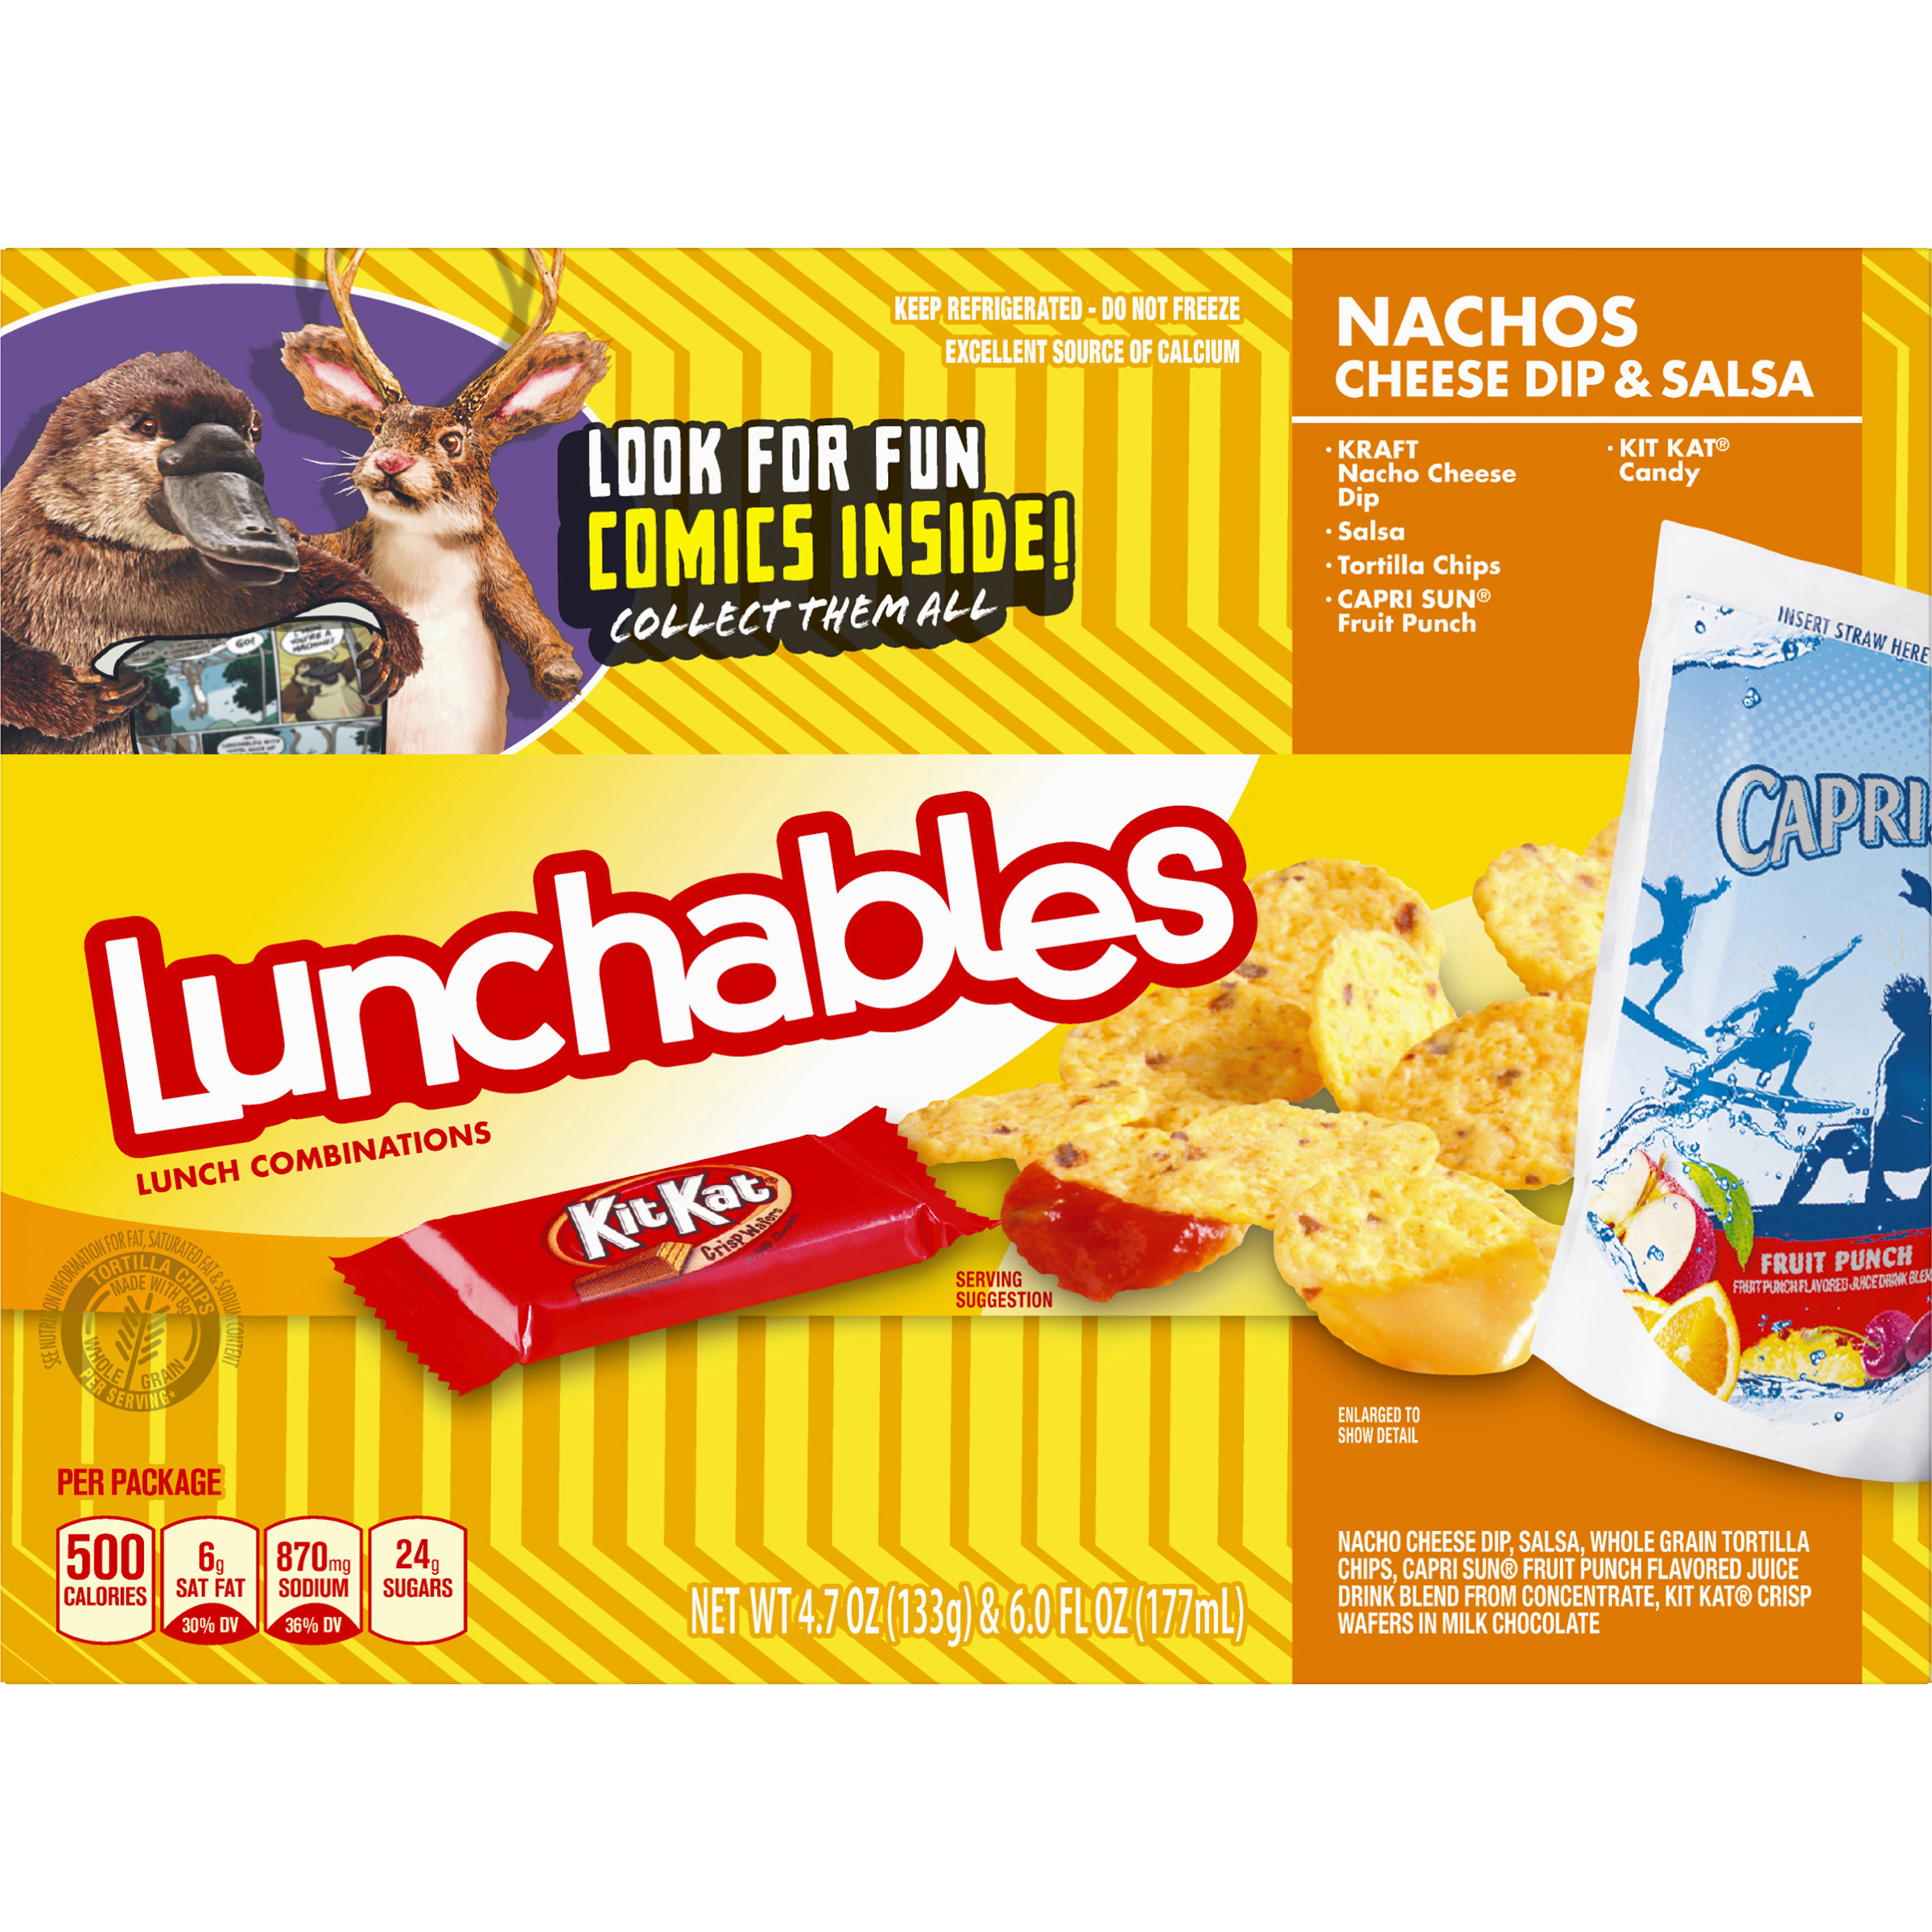 Lunchables Nacho Cheese Dip & Salsa with Capri Sun Convenience Meal